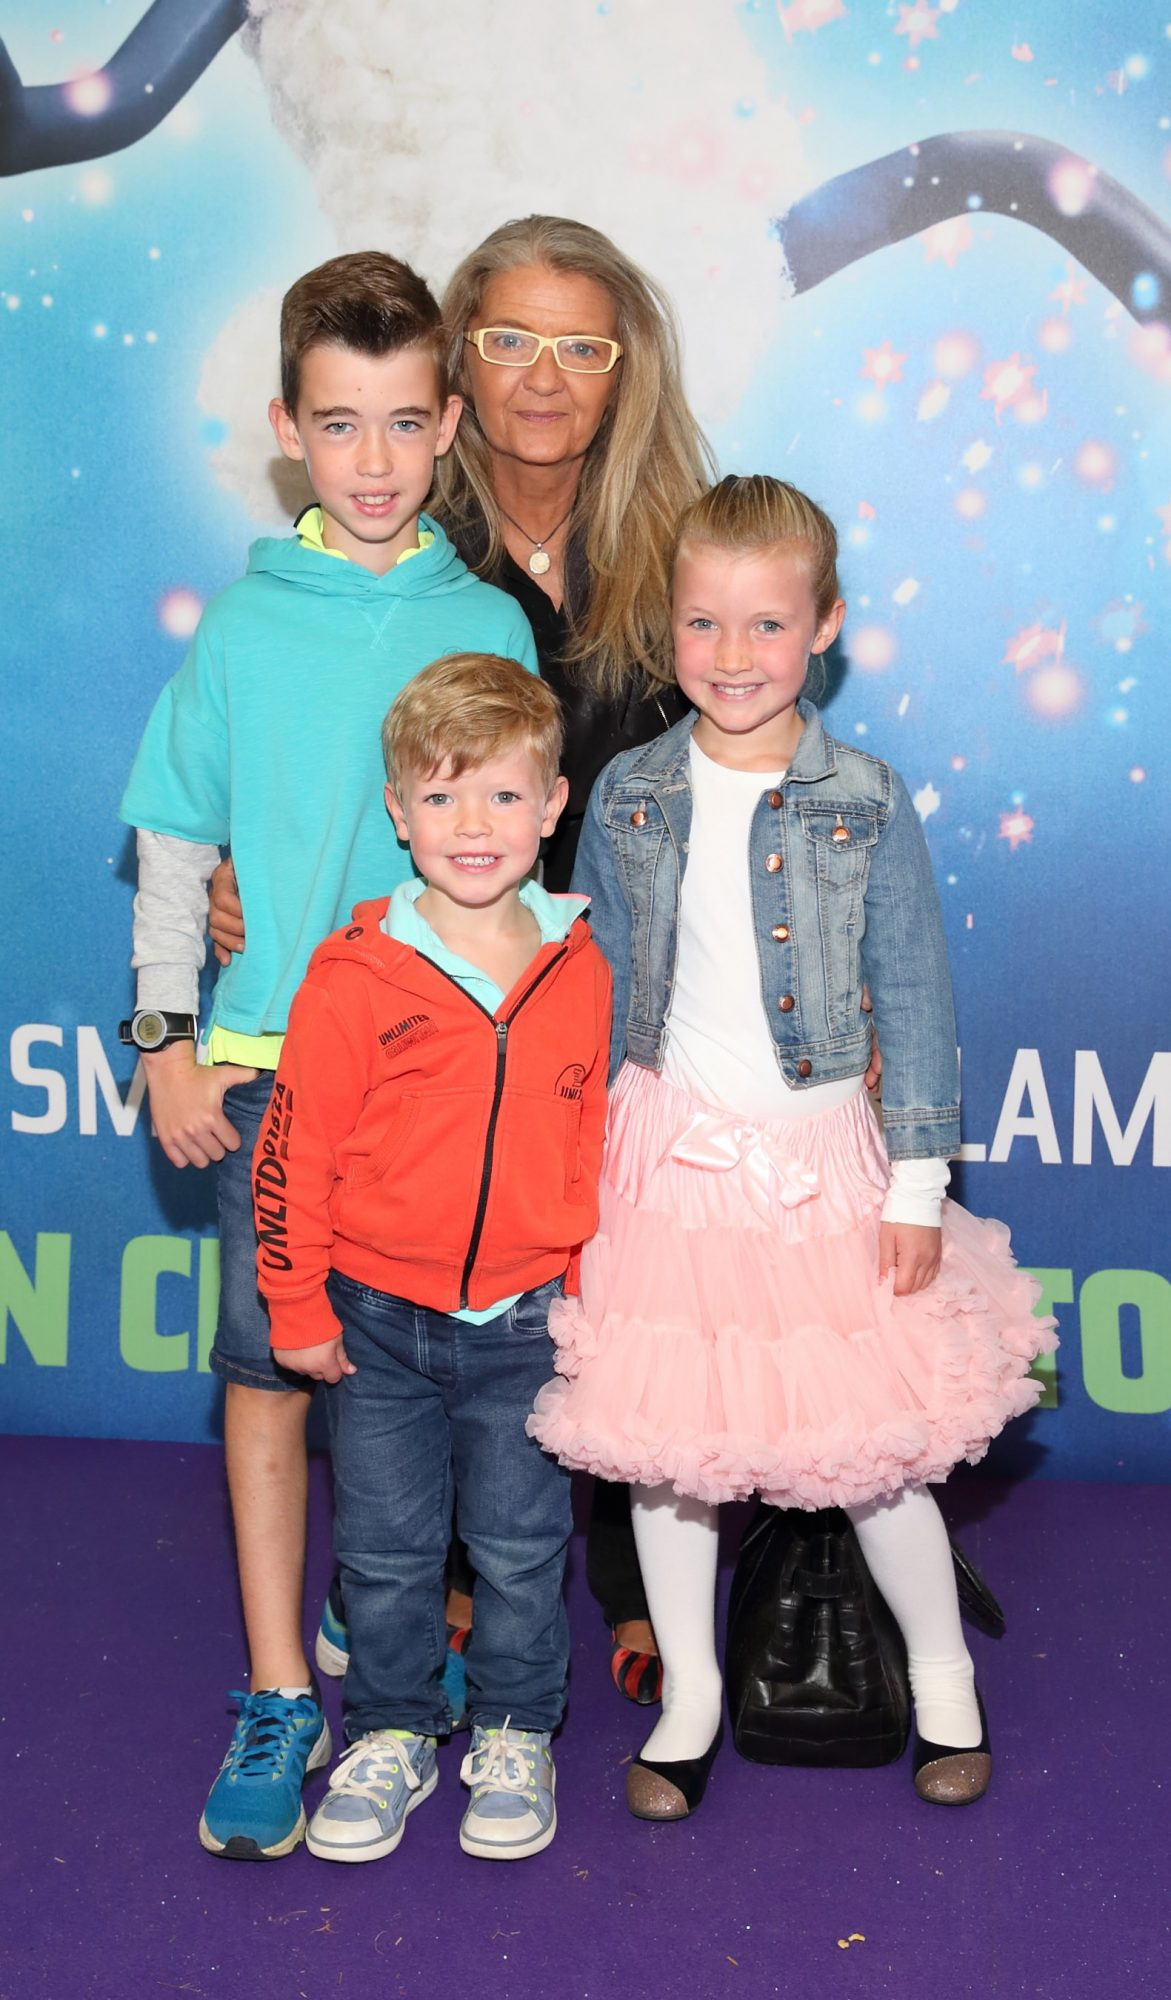 Eoin McGarry, Janette McGarry, Laura McGarry and Andrew McGarry  at the special preview screening of Shaun the Sheep at the Odeon Cinema In Point Square, Dublin.  Pic: Brian McEvoy Photography